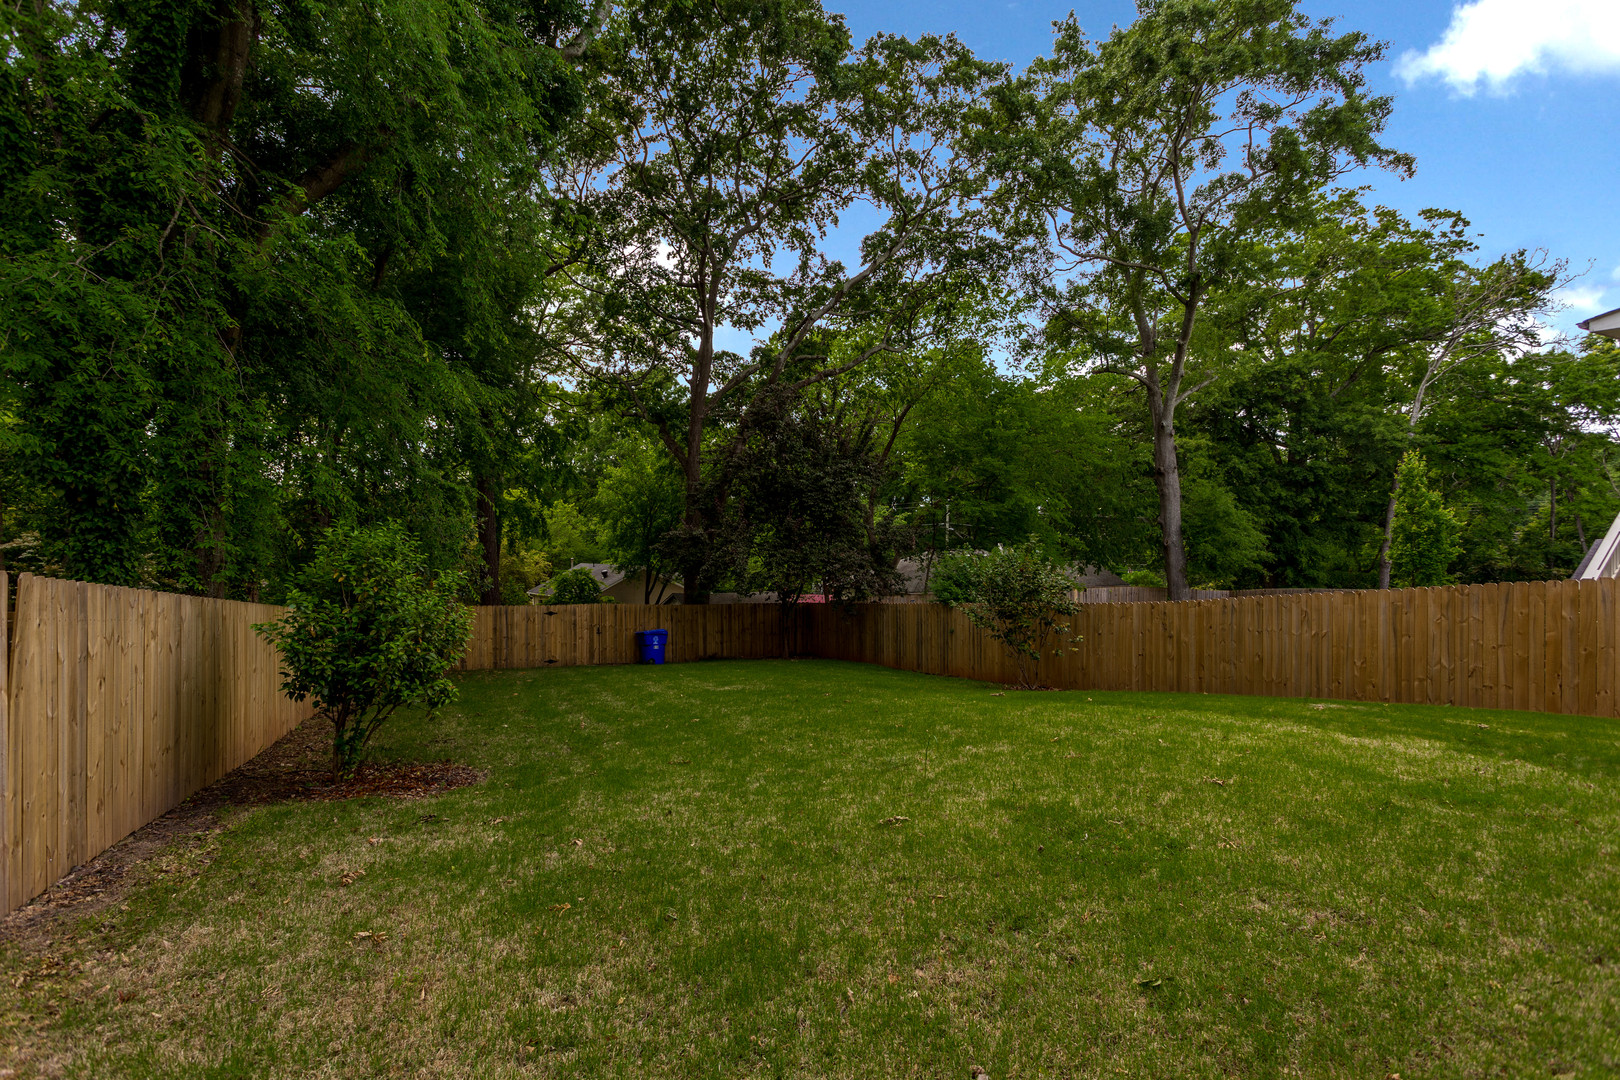 046-619 2nd Ave NE, Decatur, GA, USA_HI-